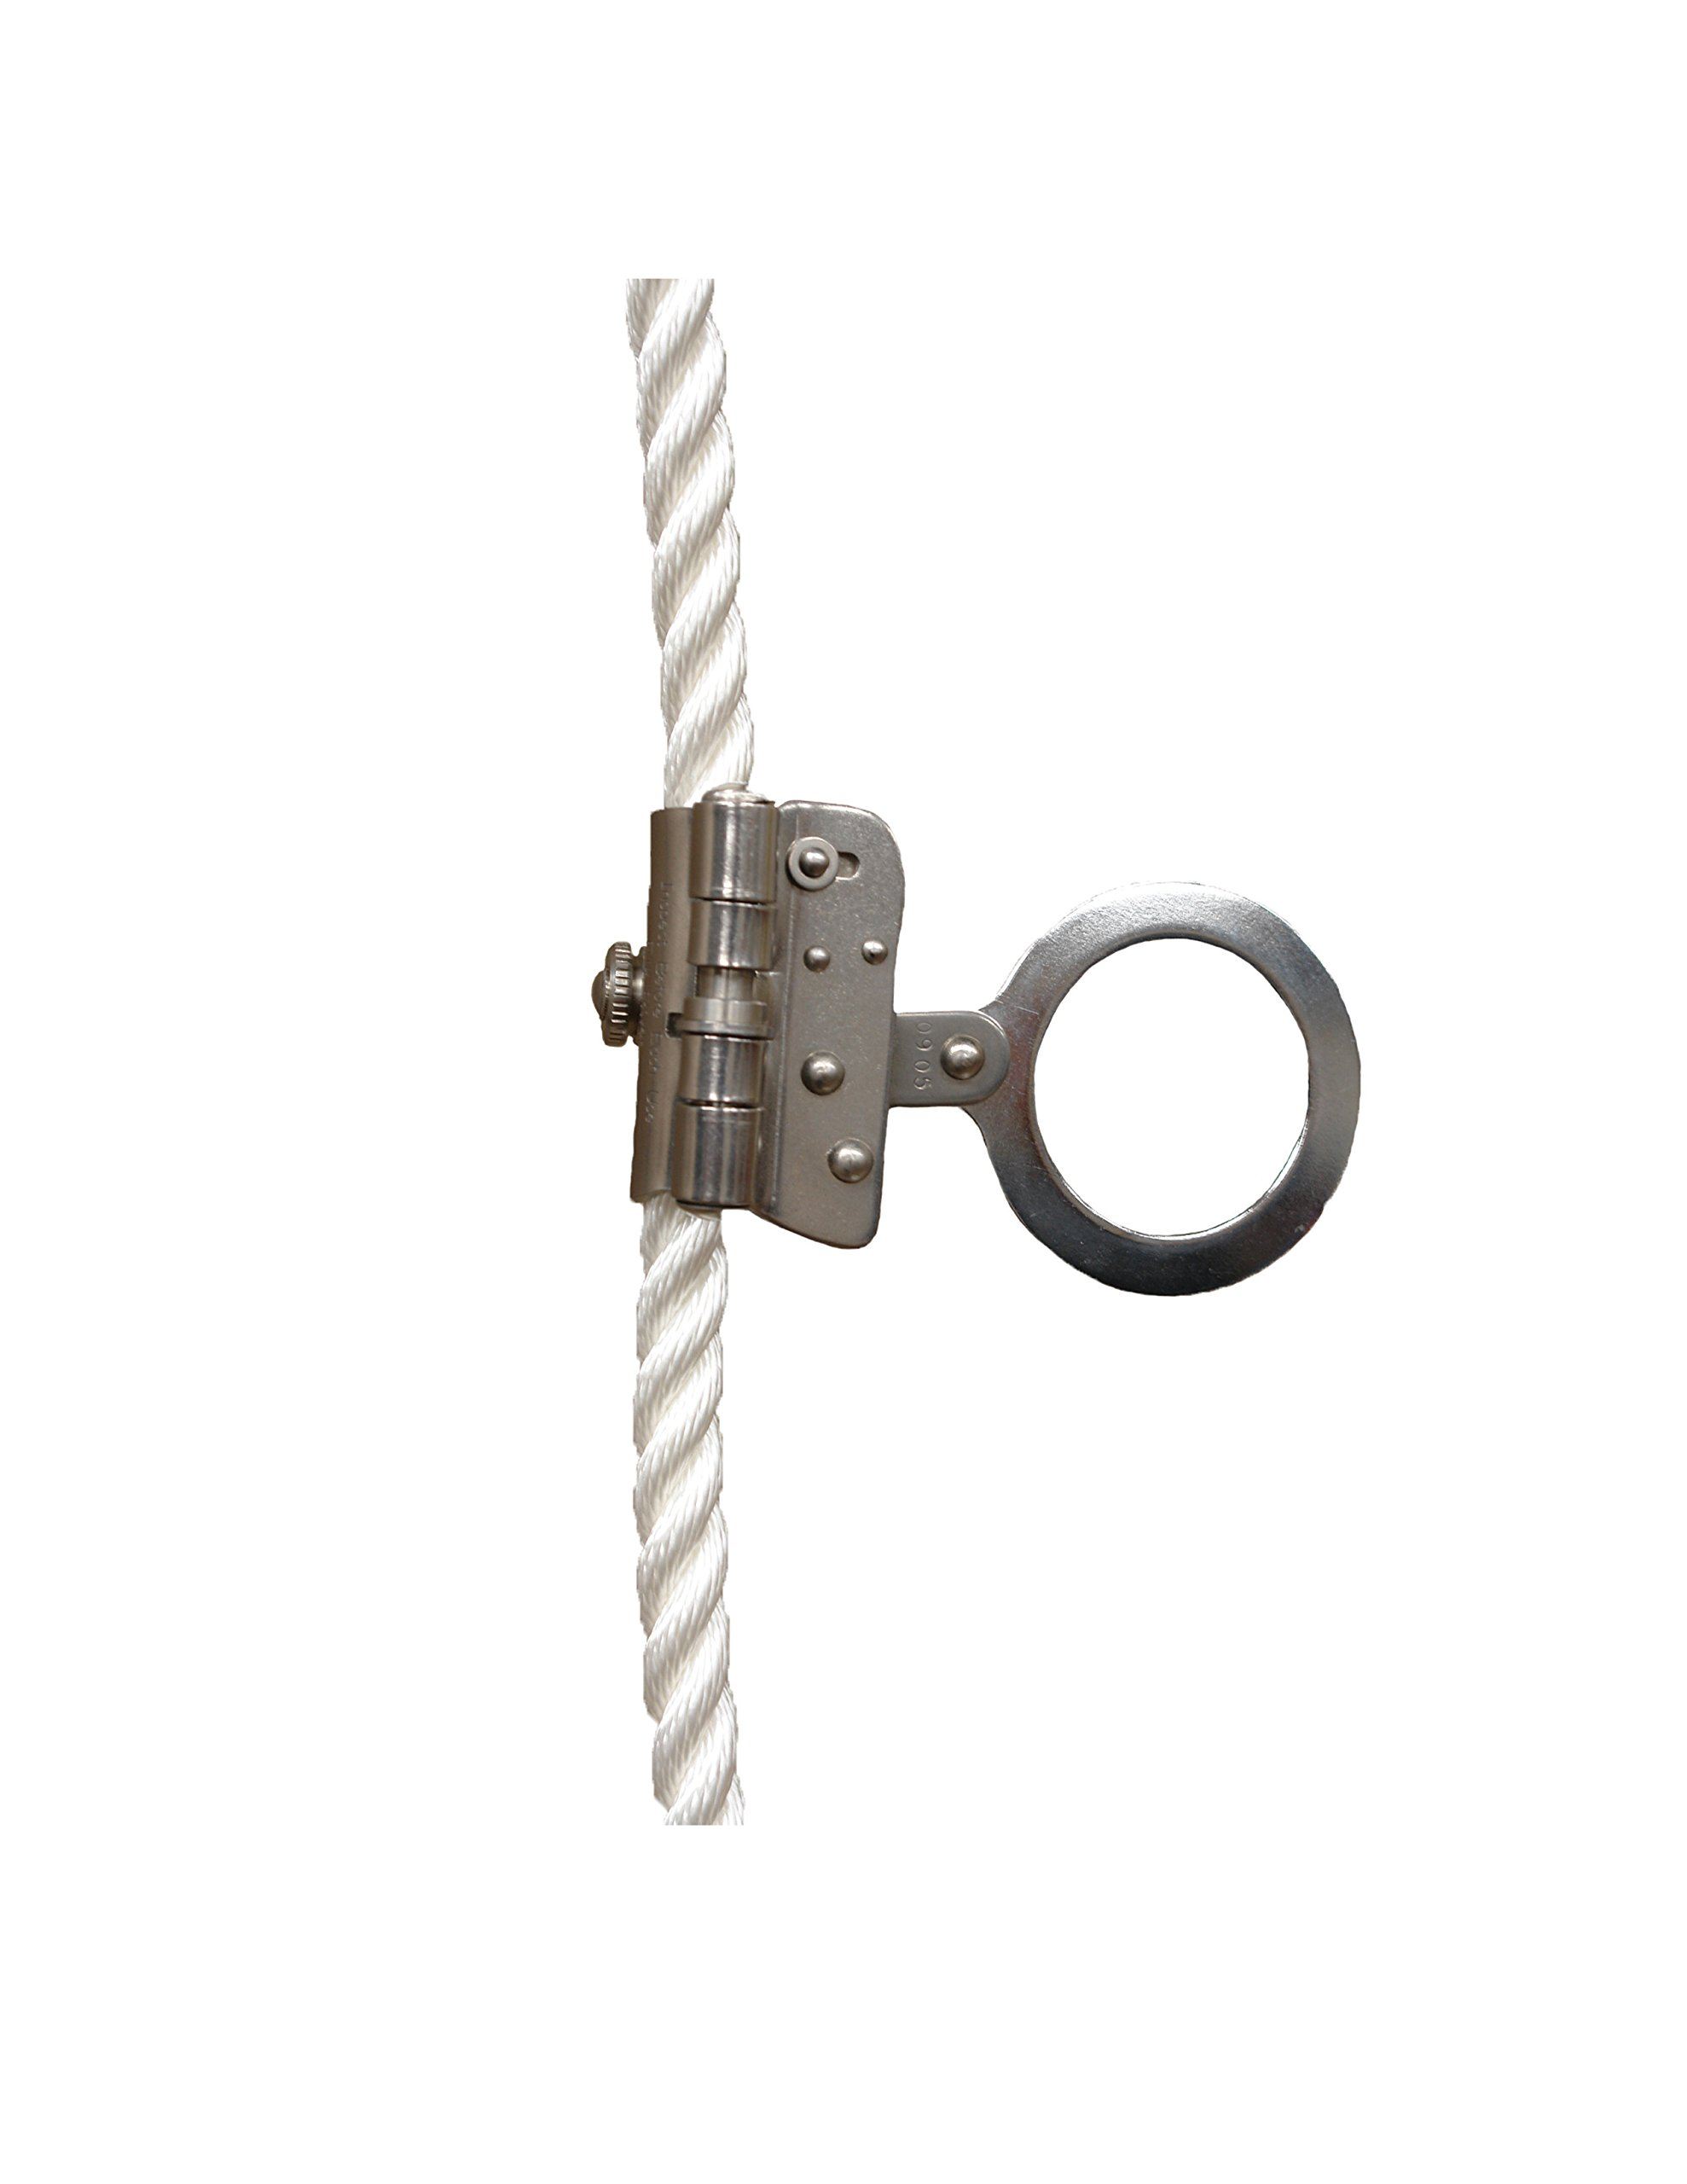 Elk River 19250 Dual Size Trailing Rope Grab with 2'' Ring and Anti-Inversion, 5/8'' x 3/4'' Size